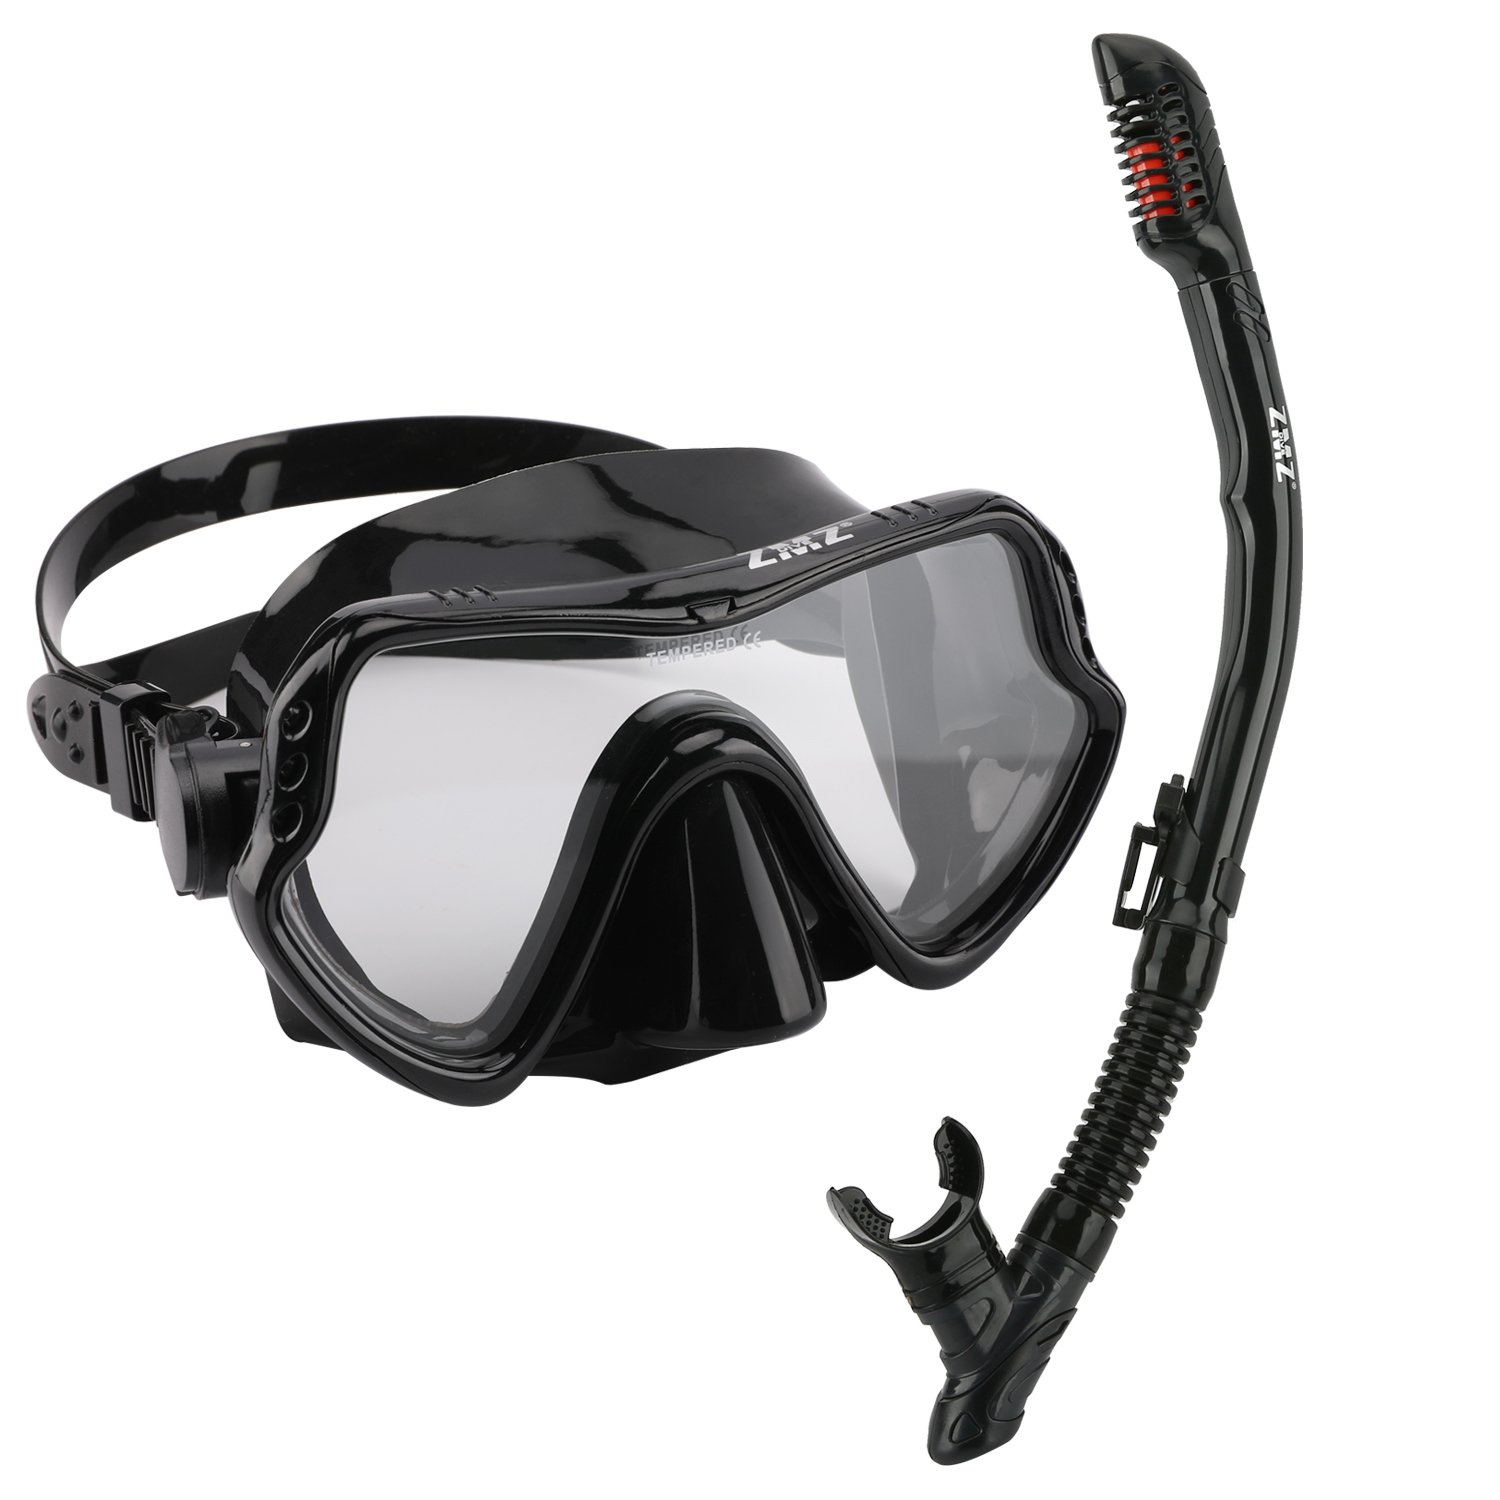 ZMZ DIVE Adult Snorkel Set, Tempered Glass Diving Mask and Dry Snorkel, Adjustable Anti-Leak Anti-Fog Design Panoramic Scuba Mask, with Food-Grade Silicone for Freediving Snorkeling (Black) by ZMZ DIVE